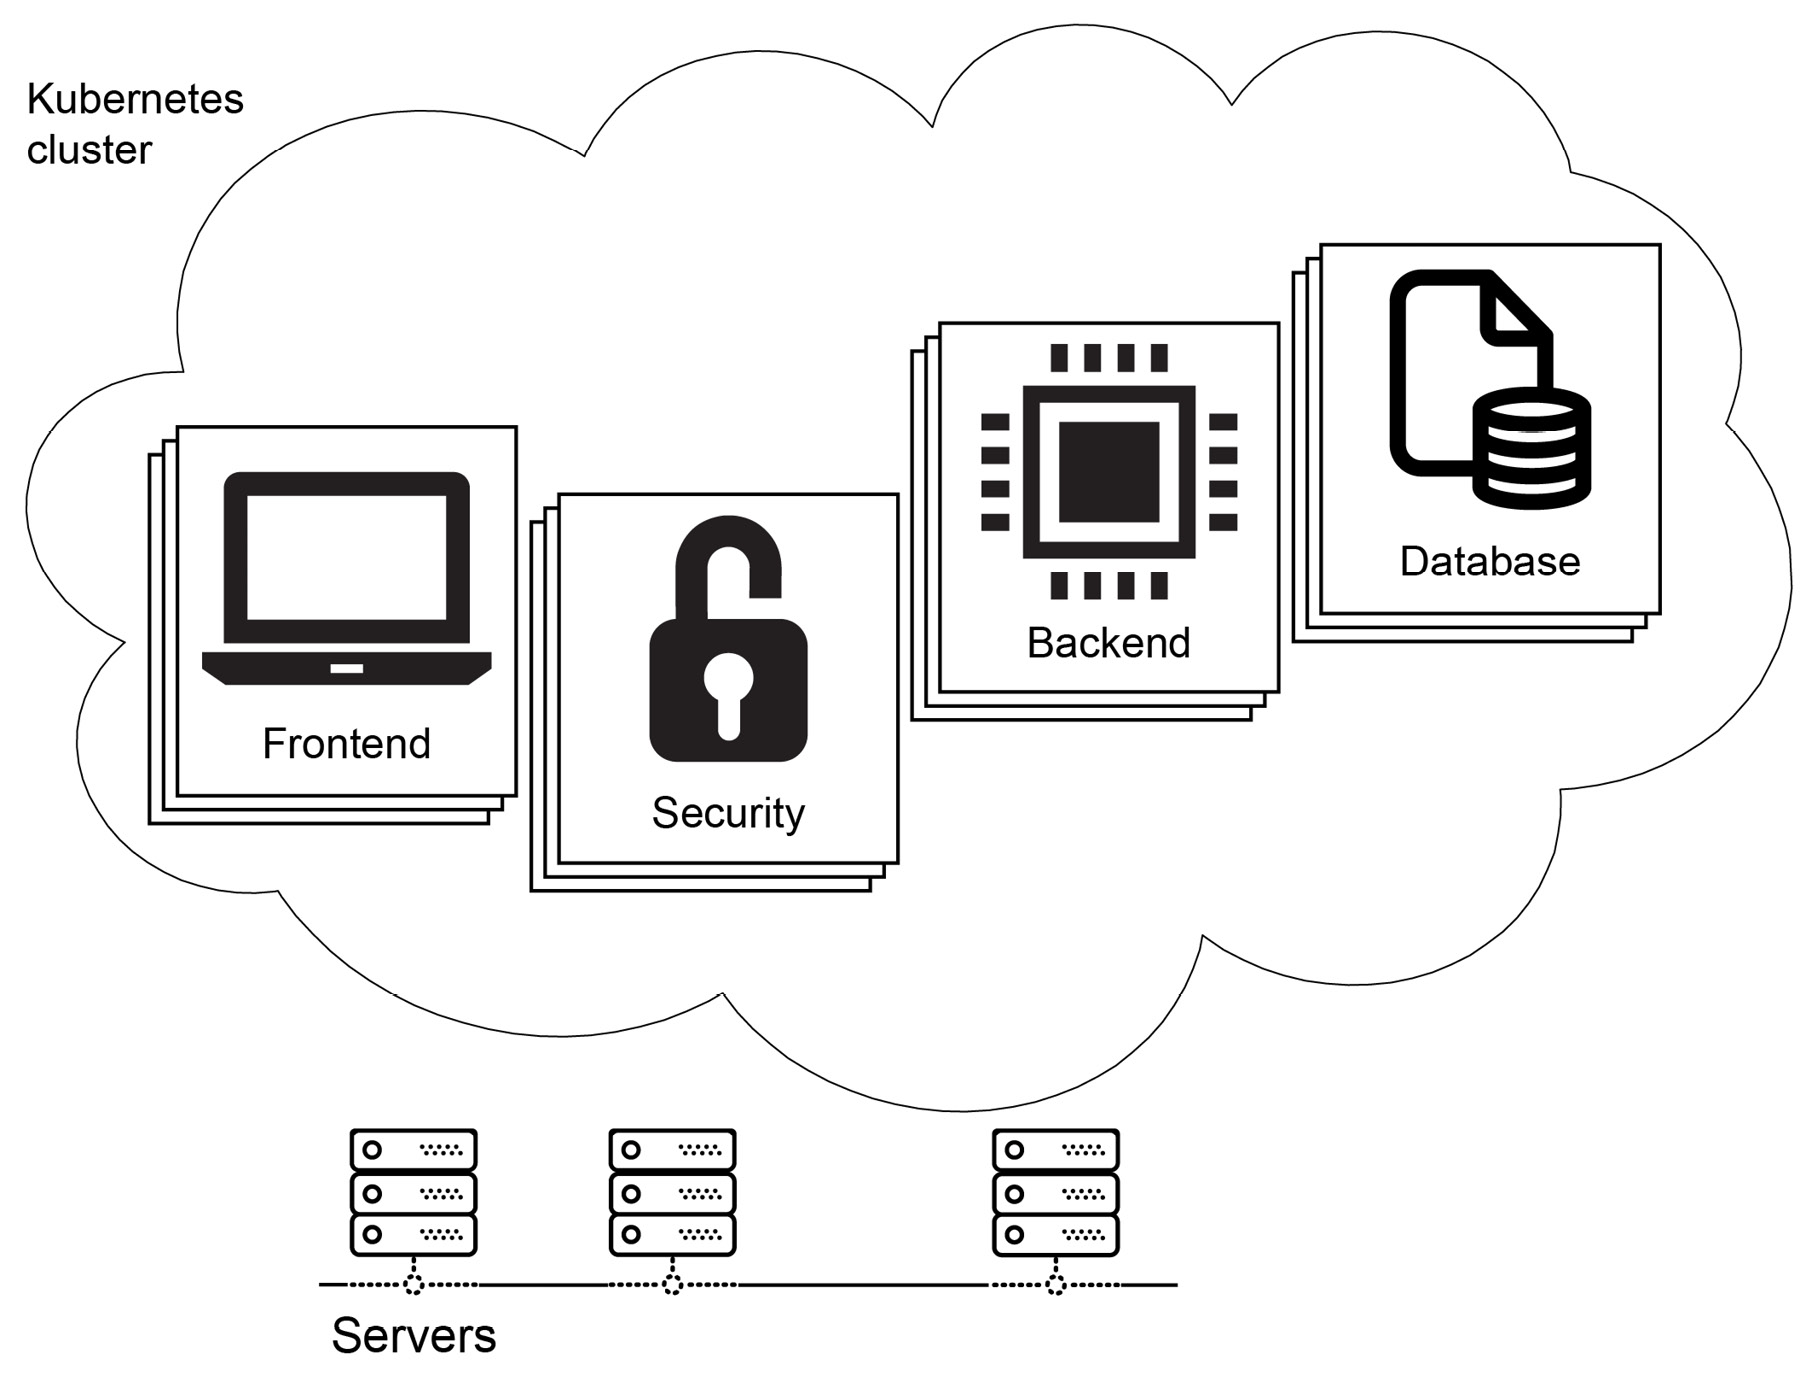 Figure 1.7: Microservices software architecture